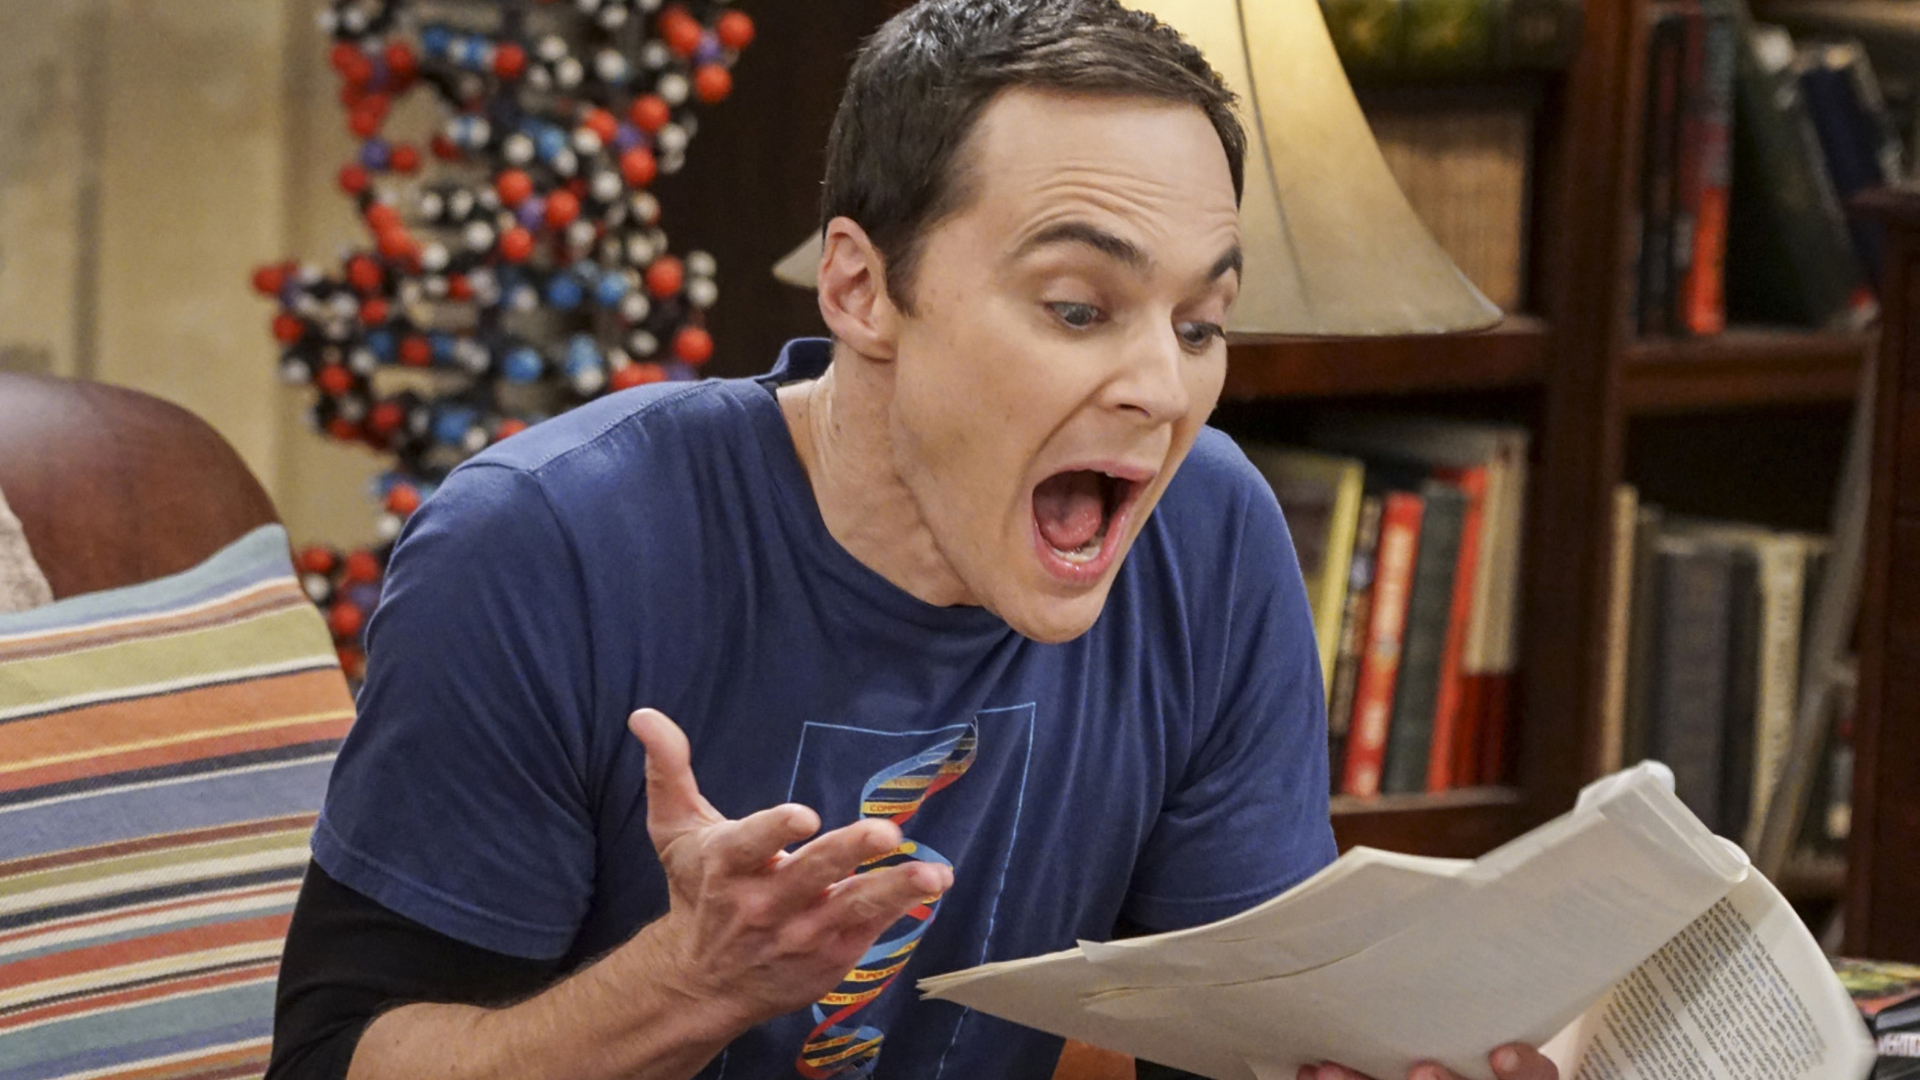 Sheldon freaks out over Bert's work.